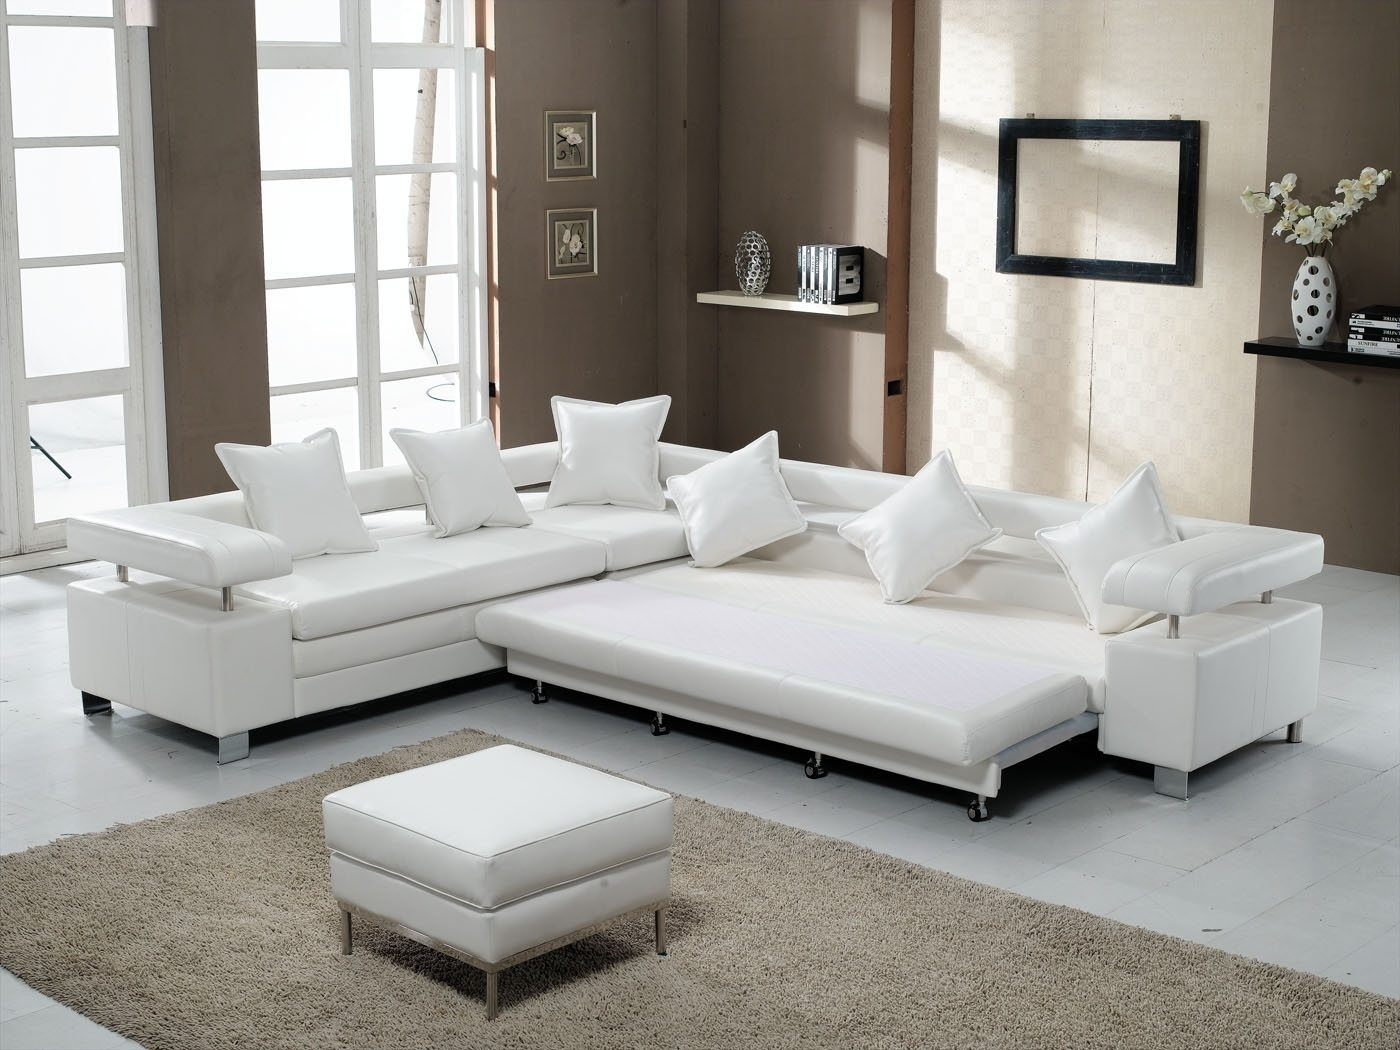 Sectional Sofa : Buy Sectional Couch Fabric Sofas Tan Sectional In Modern Microfiber Sectional Sofas (View 9 of 10)